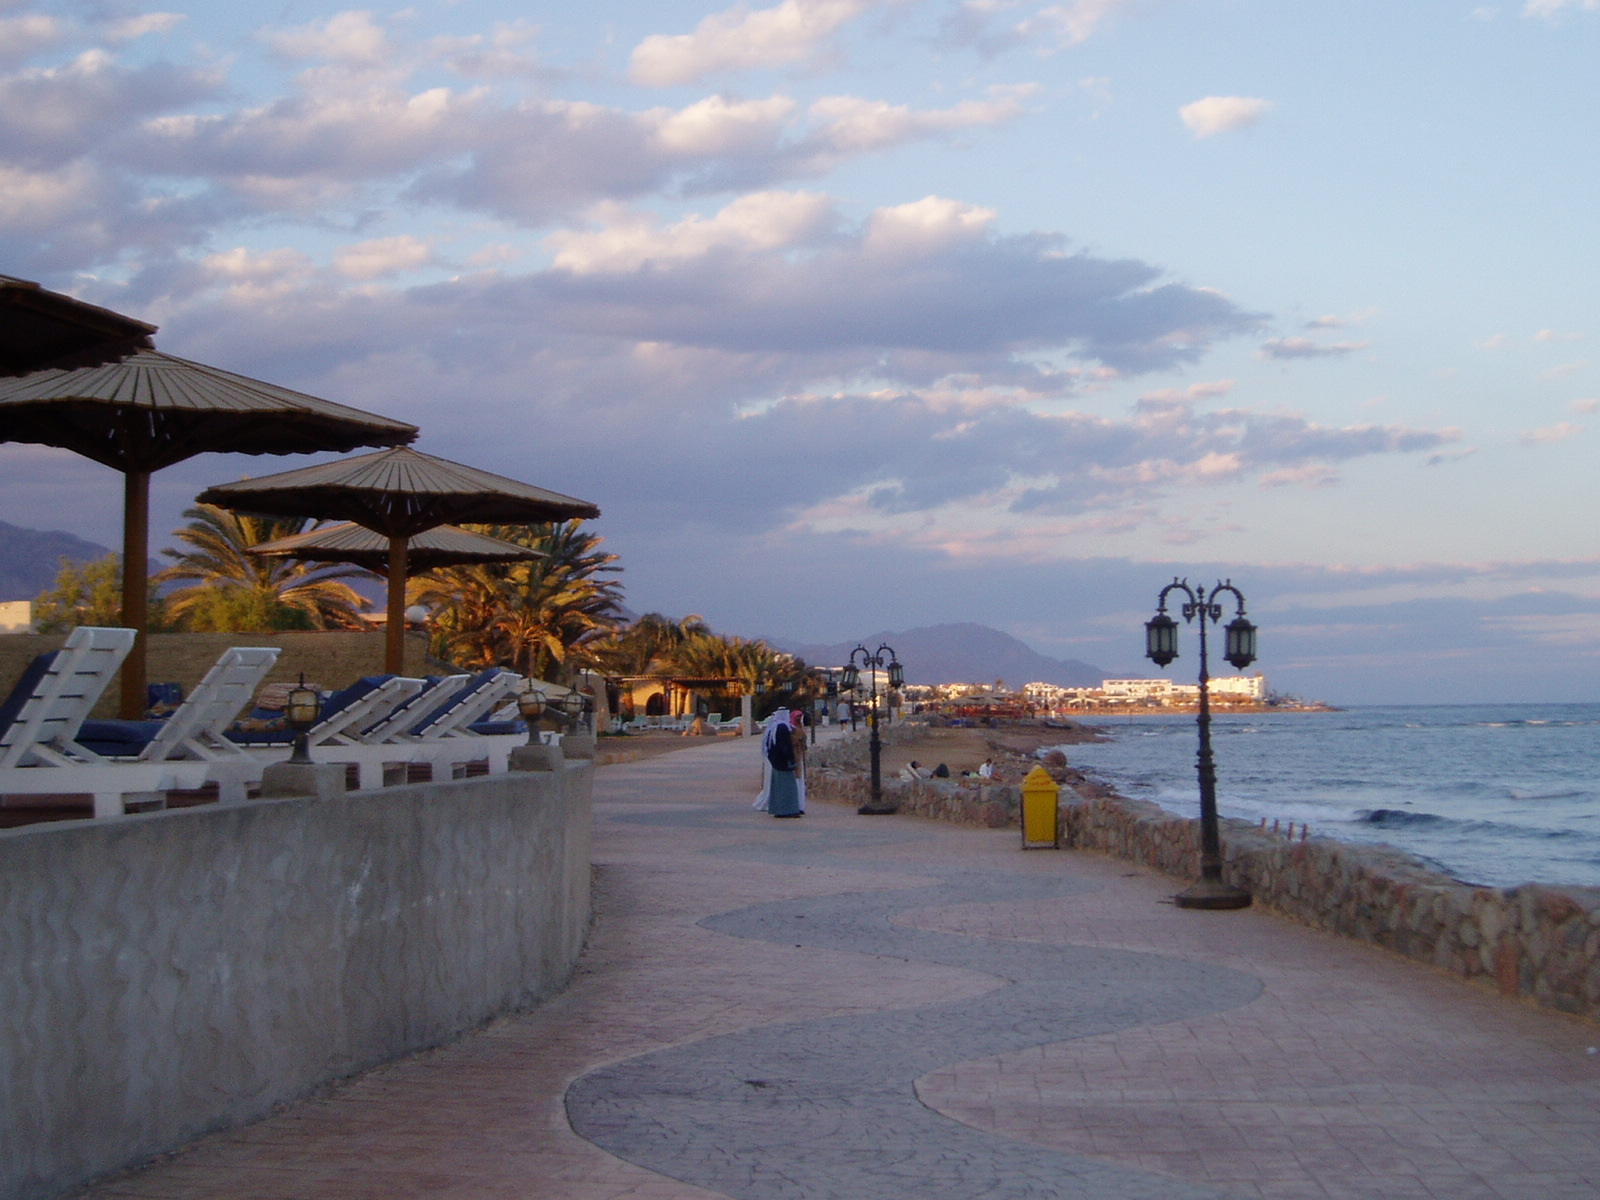 Dahab Egypt  City new picture : dahab egypt bearing